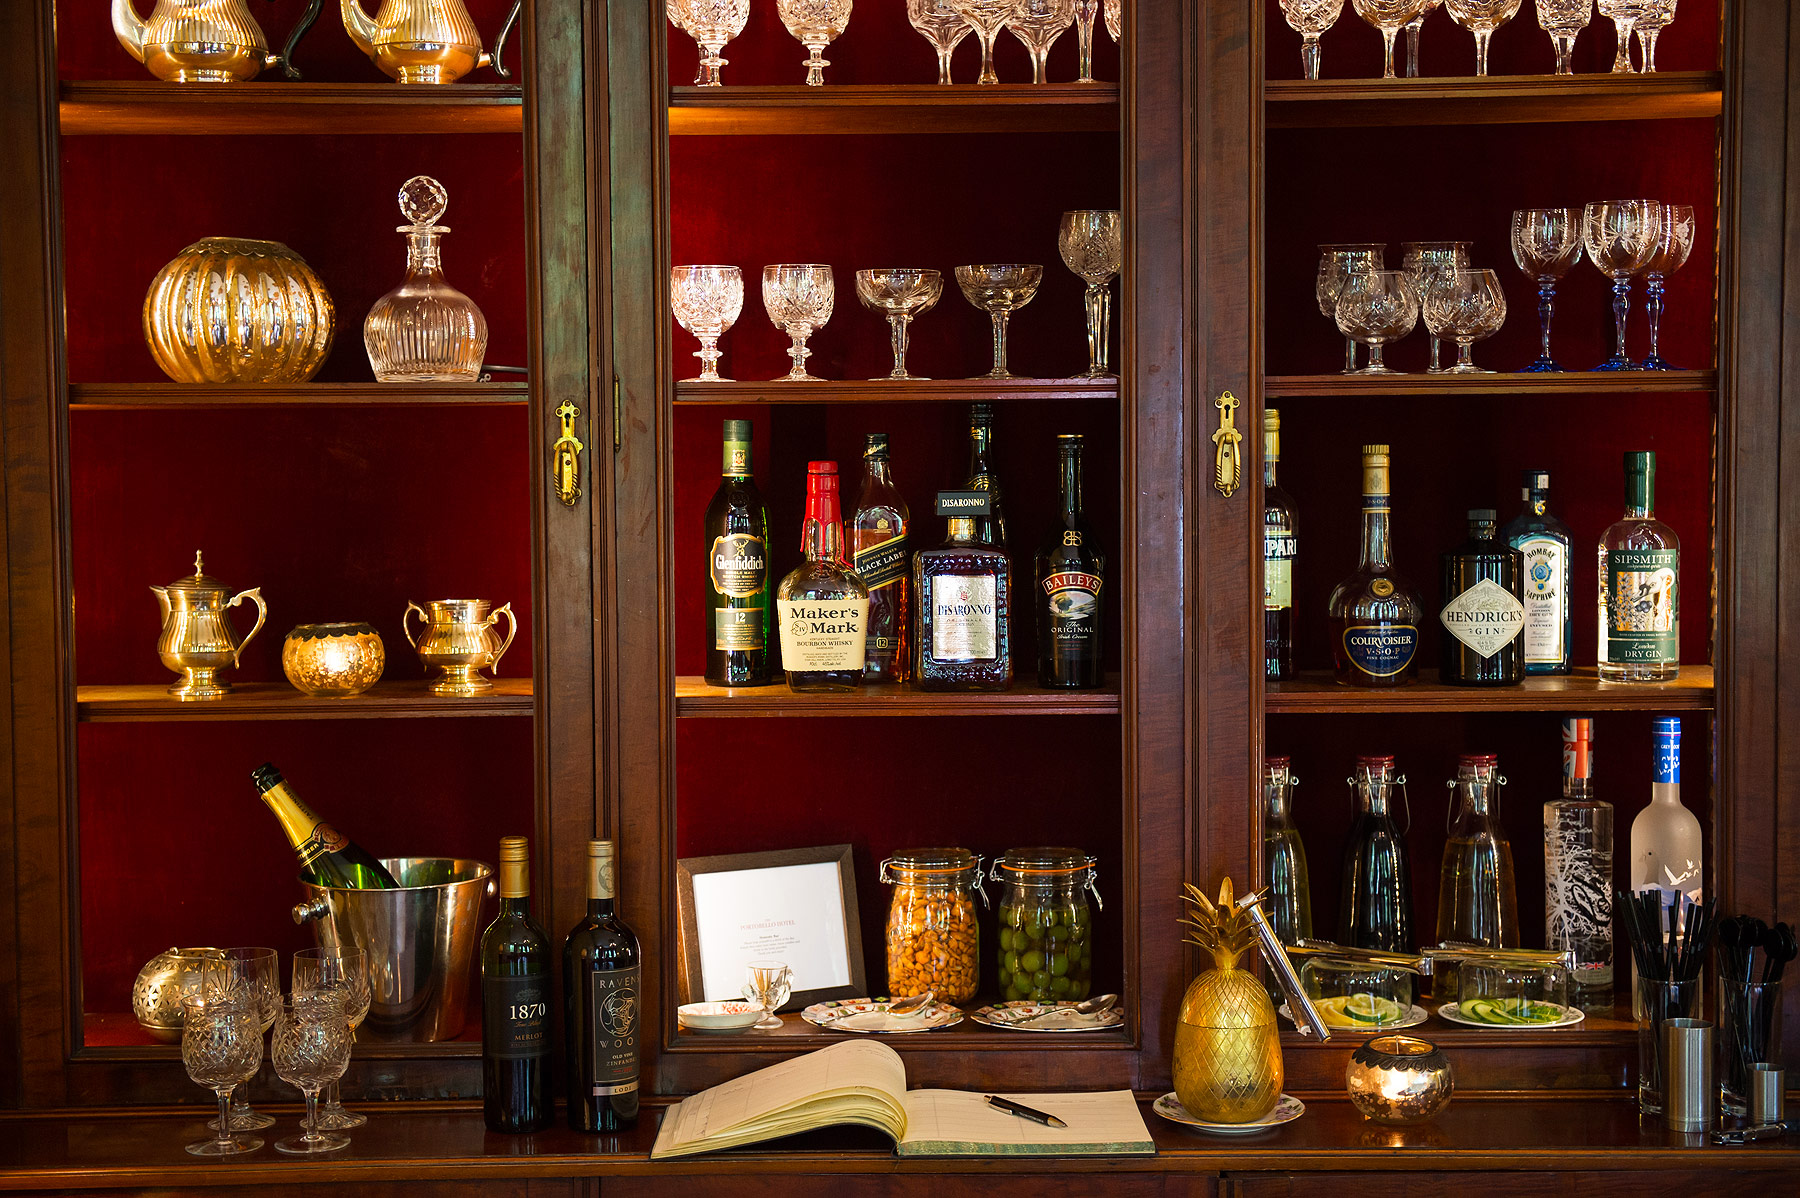 The Honesty Bar at the Portobello Hotel in Notting Hill